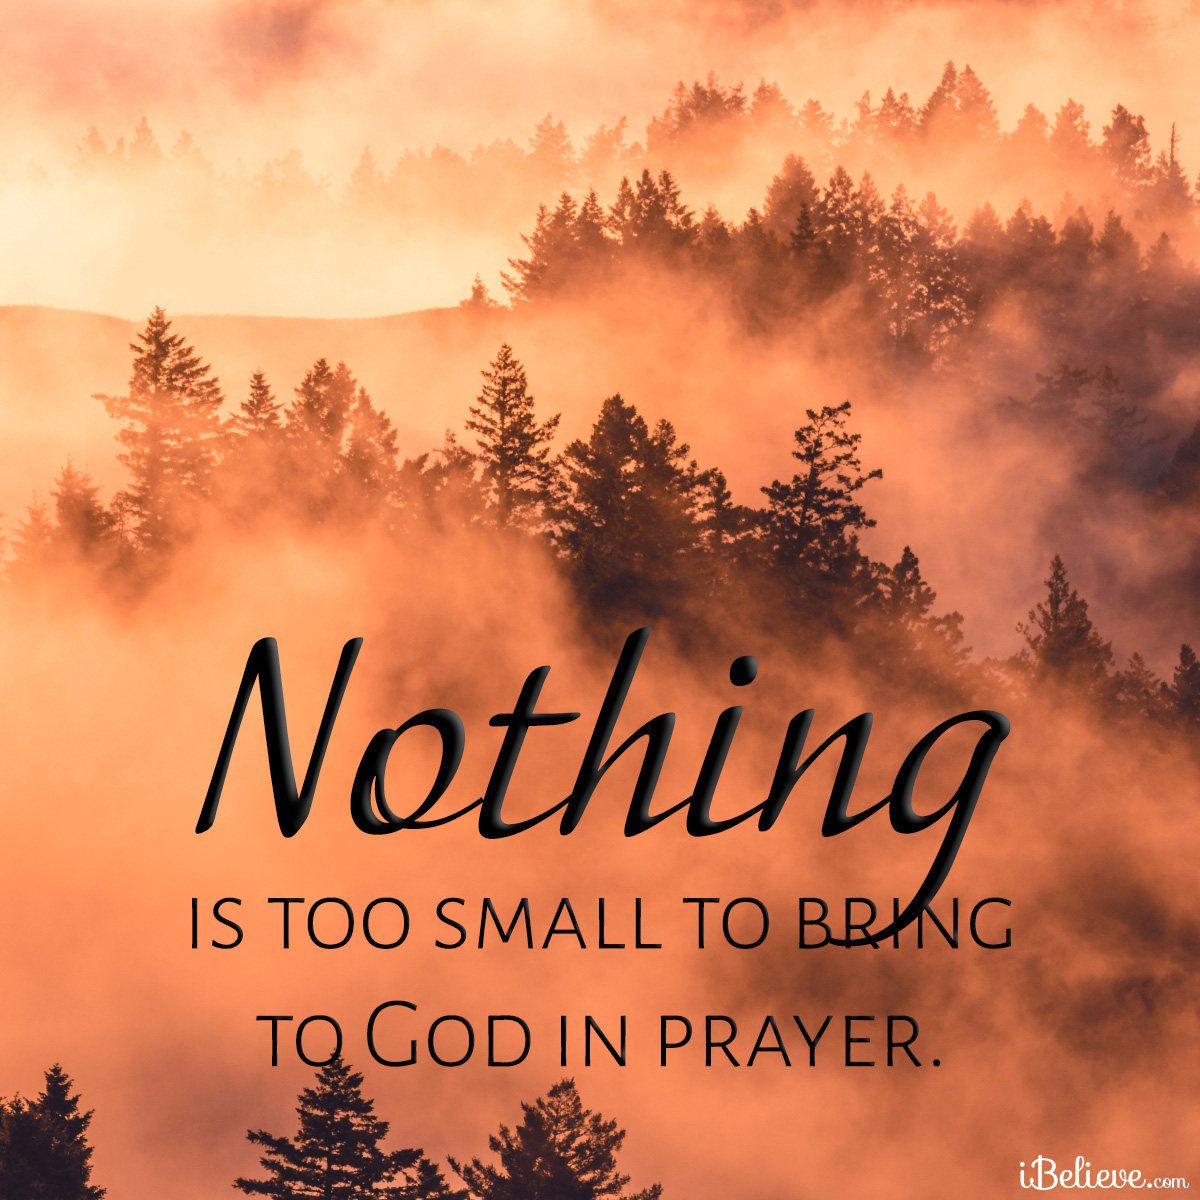 nothing is too small for God